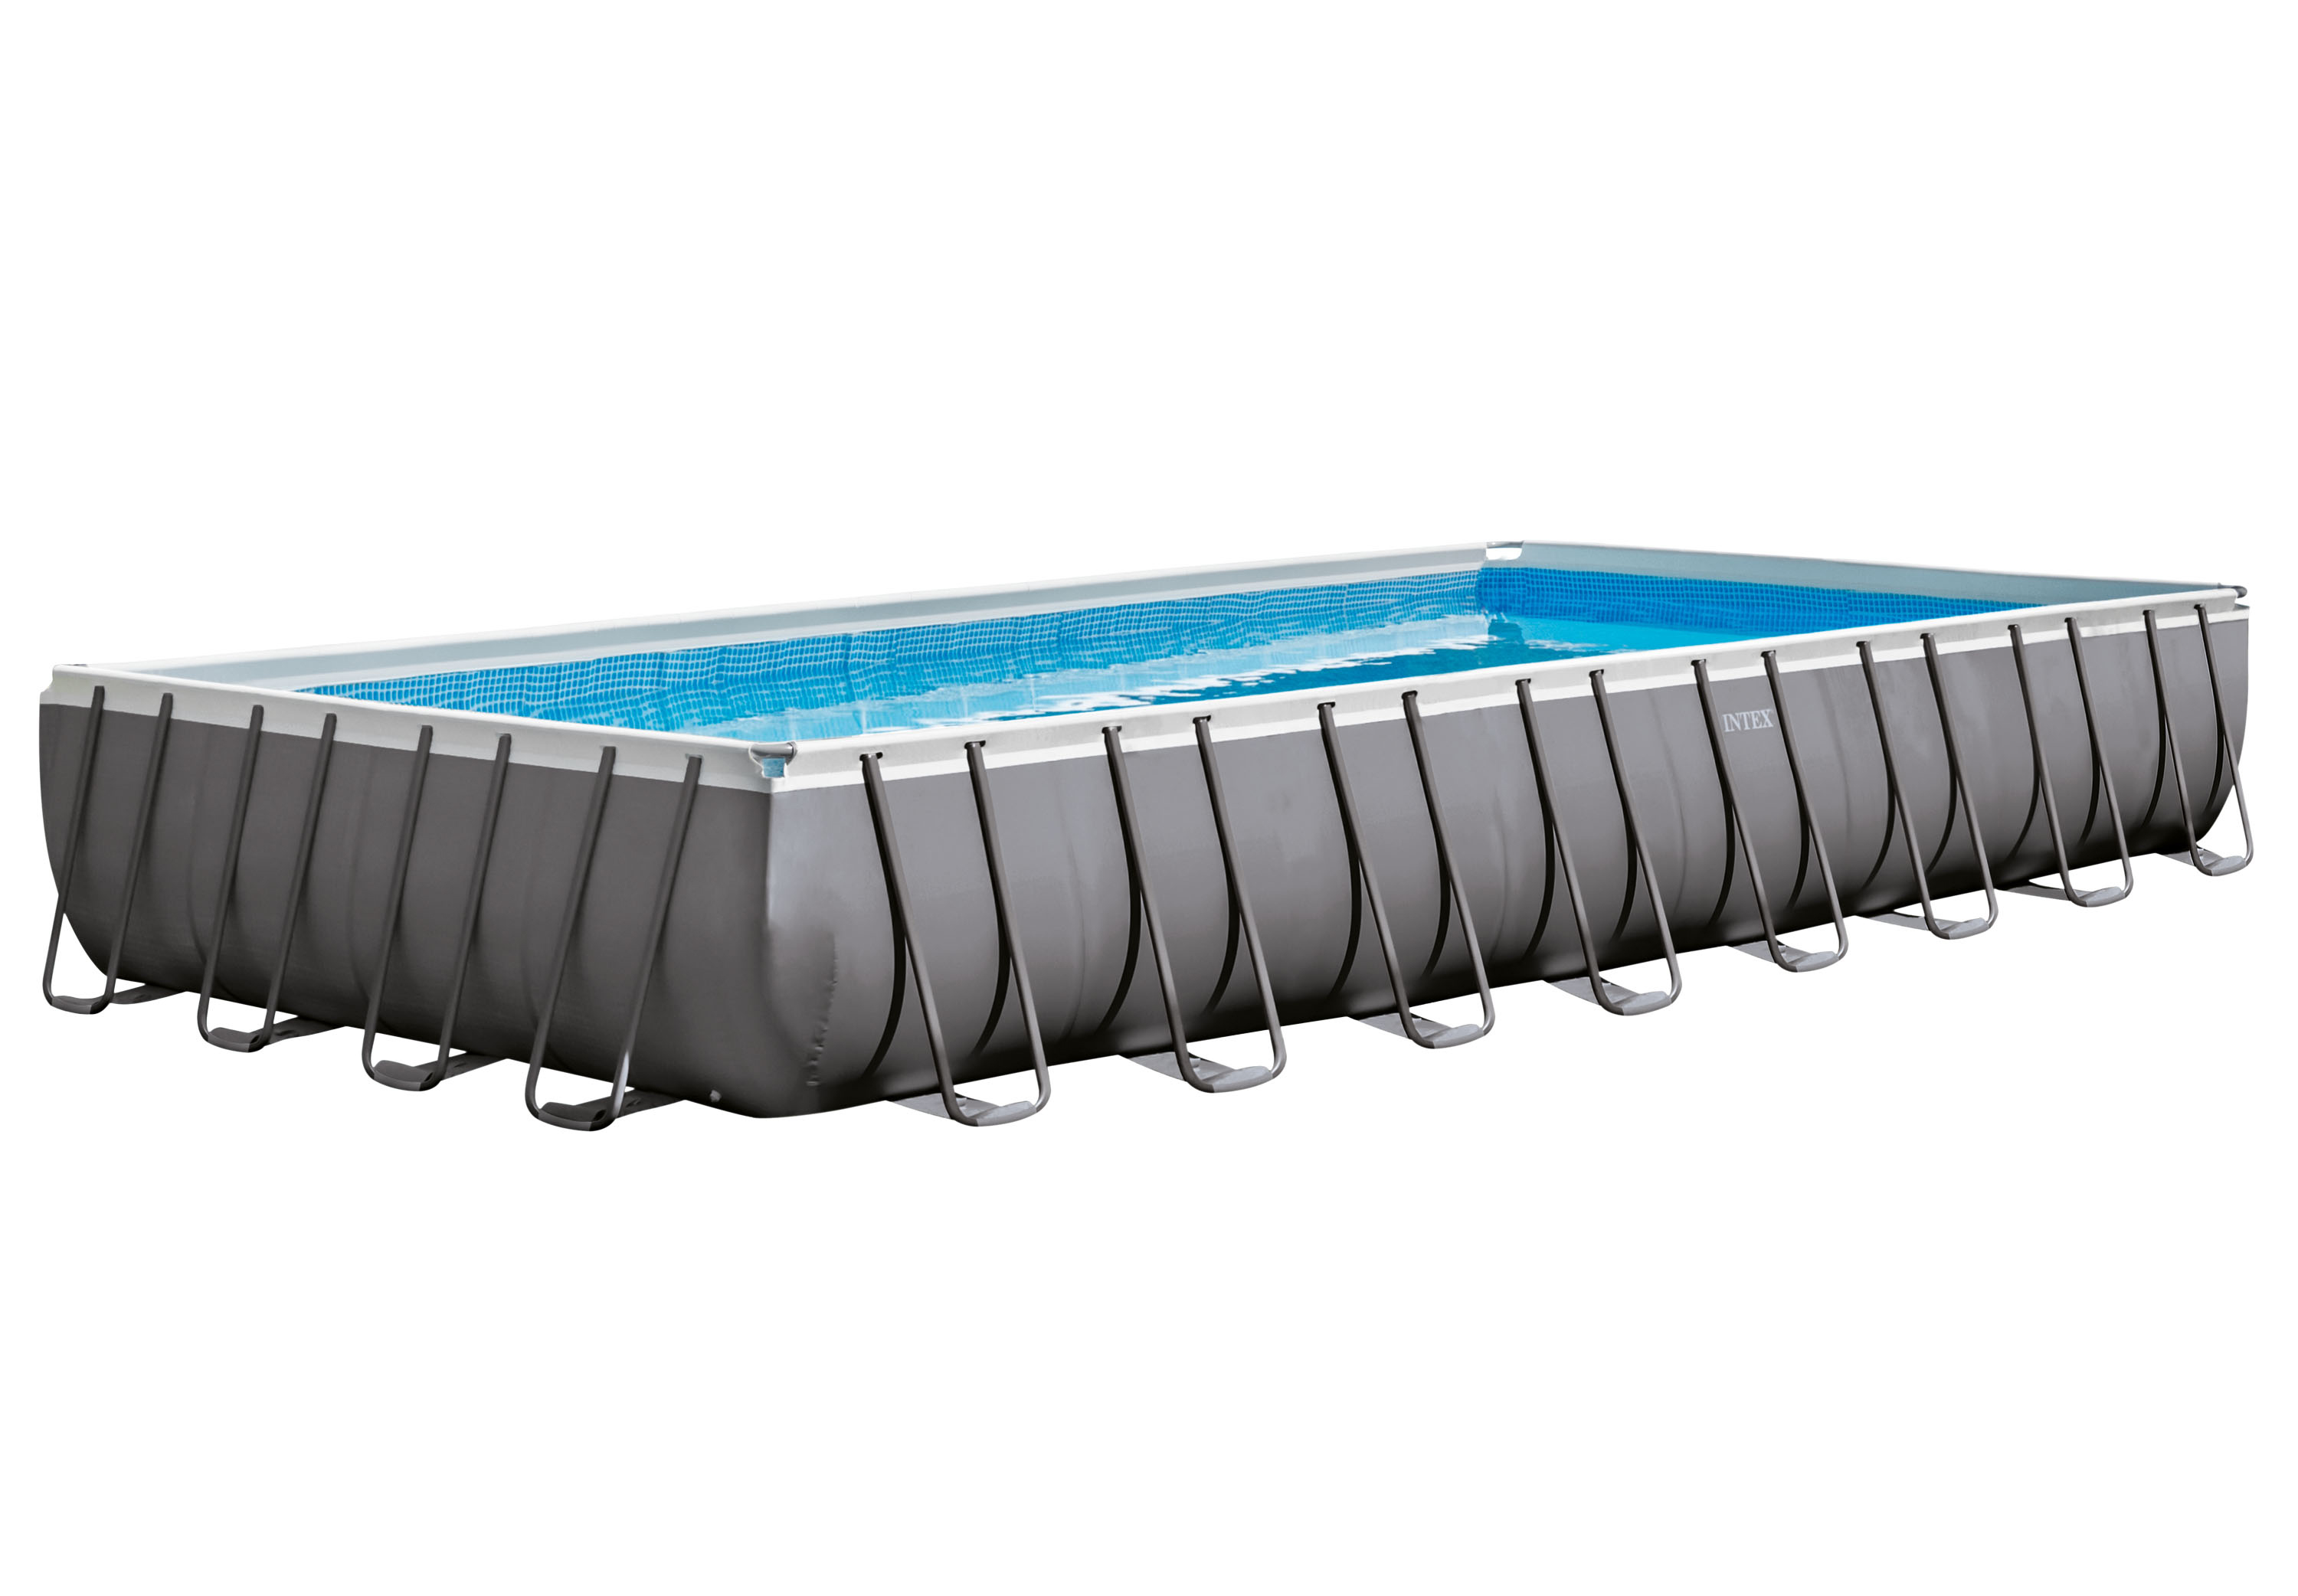 INTEX 32 ft x 16 ft x 52 in Ultra Frame Rectangular Pool Set with 2,800 Gal Sand Filter Pump